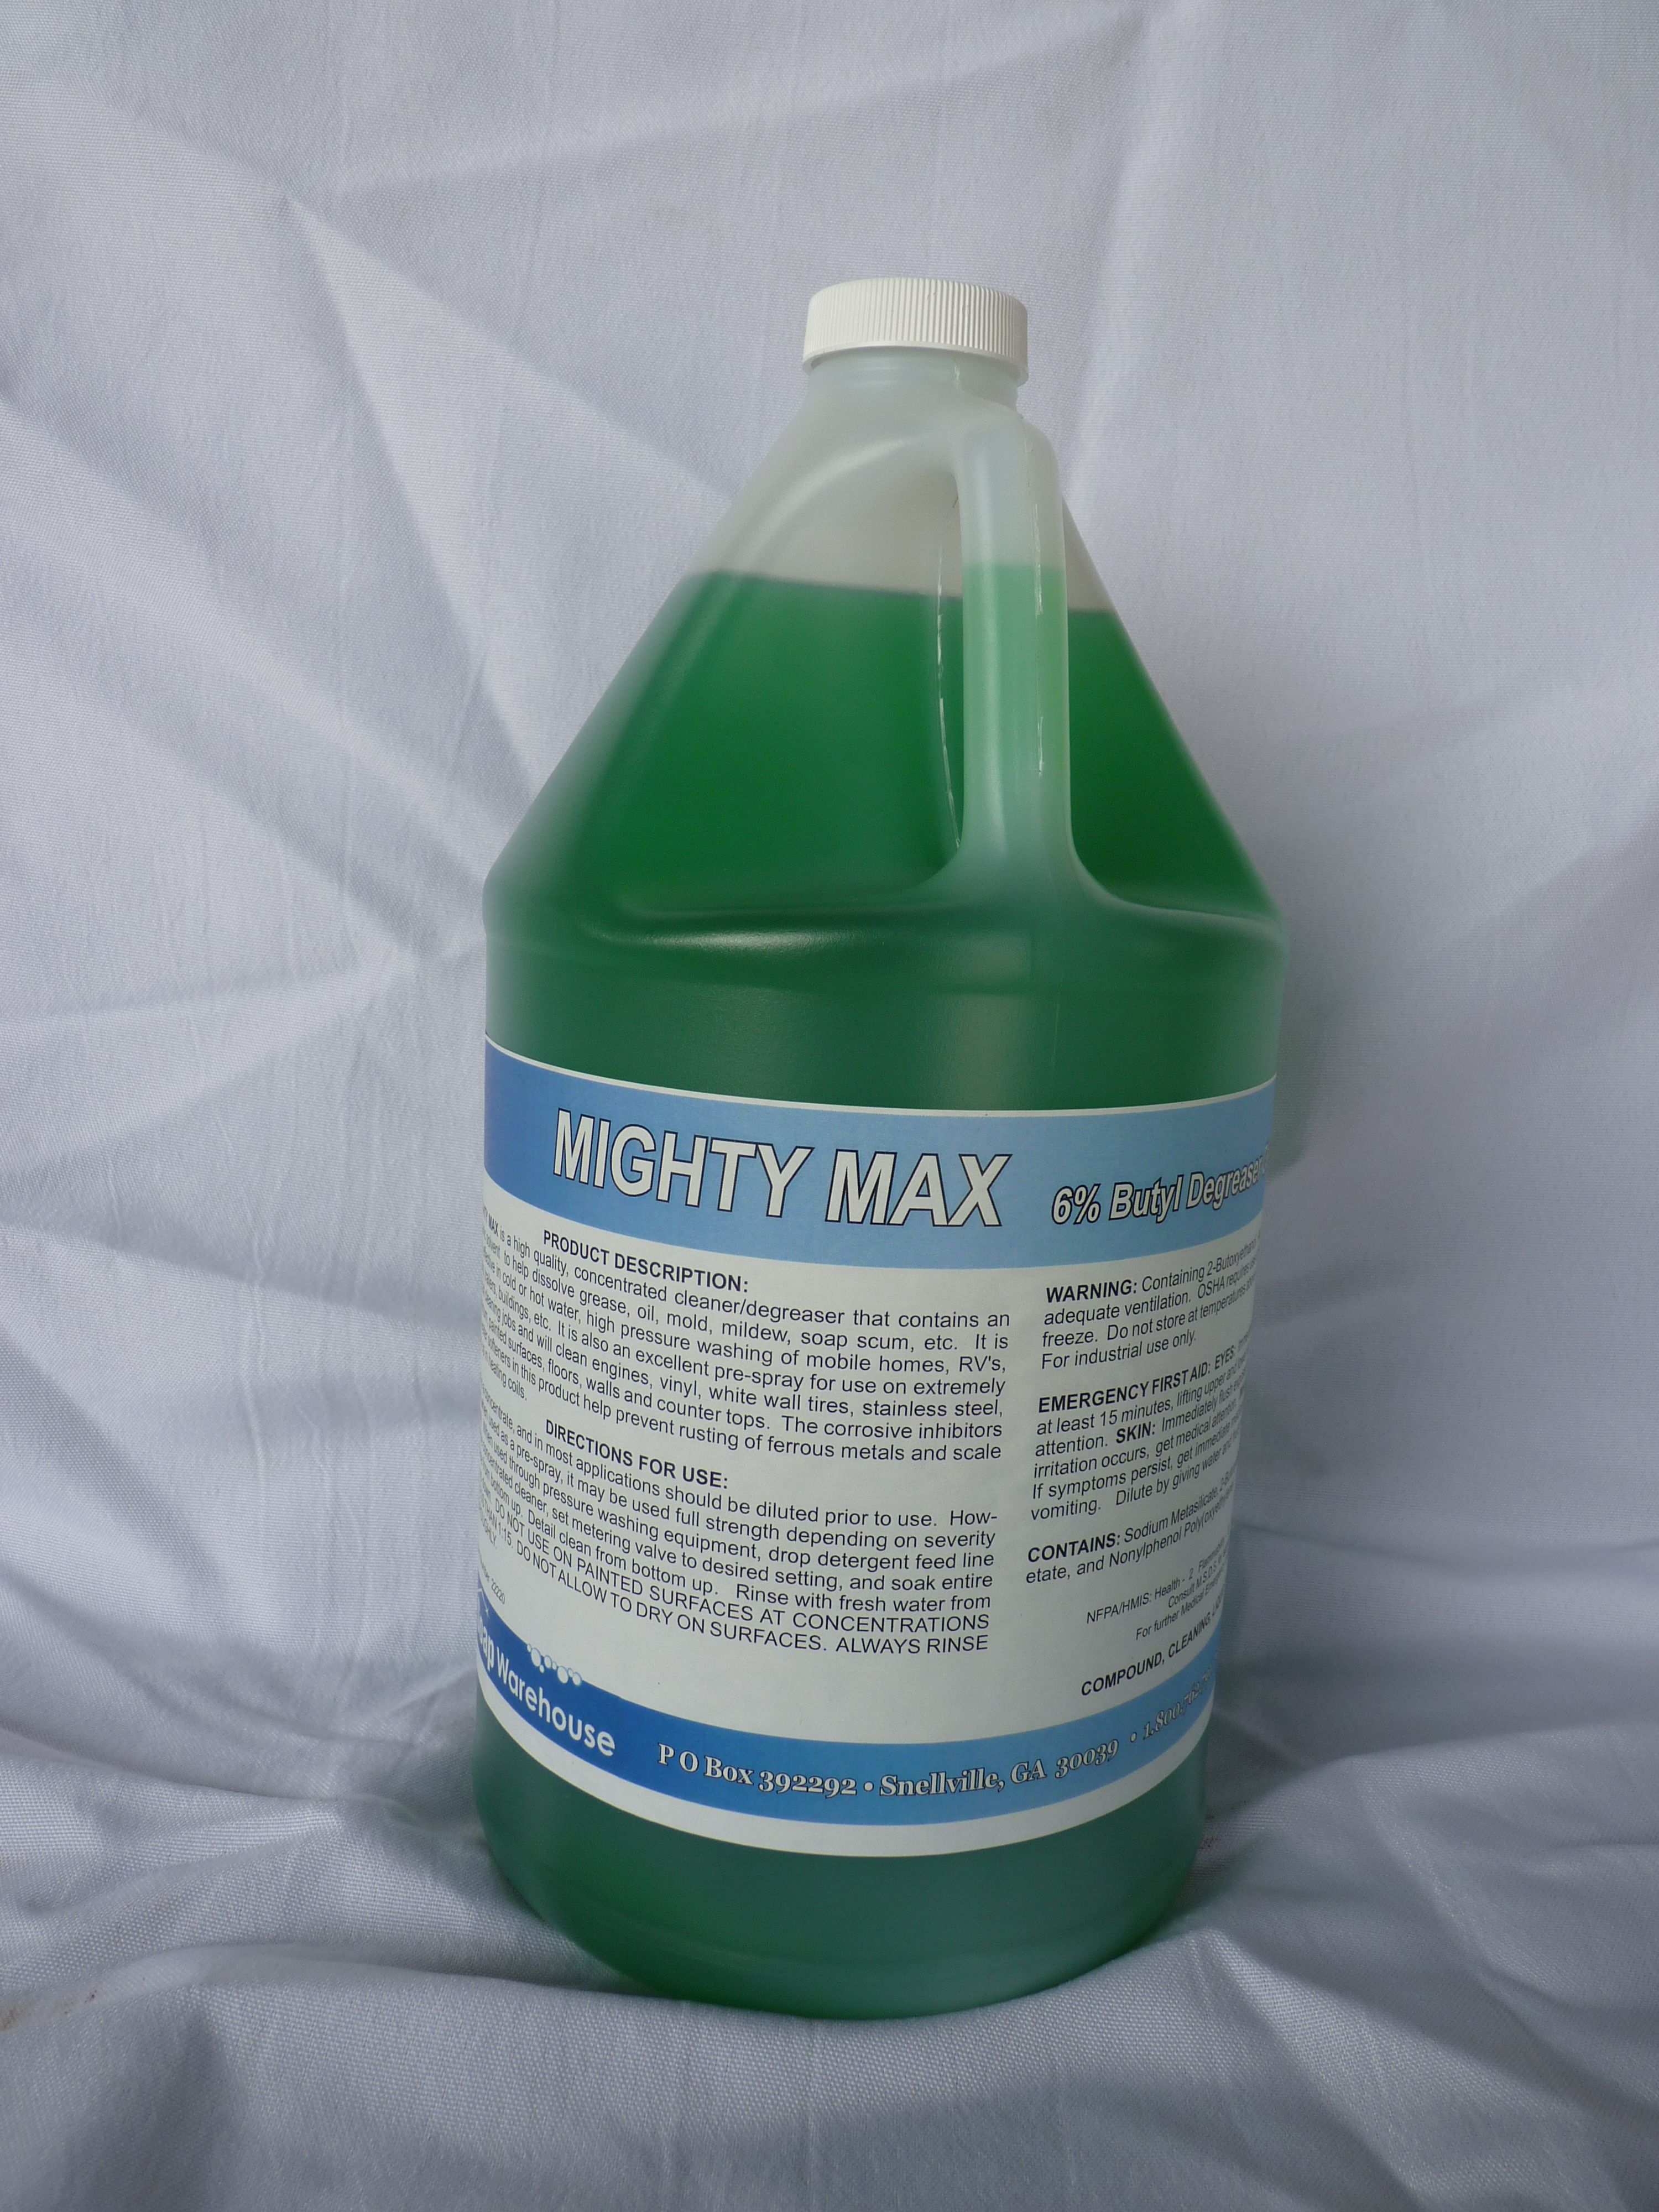 Mighty Max This Multi Use Product Contains 6 Butyl A Degreaser That Can Be Used As A Housewash To Clean Greasy Vehilce House Wash Dish Soap Bottle Cleaning